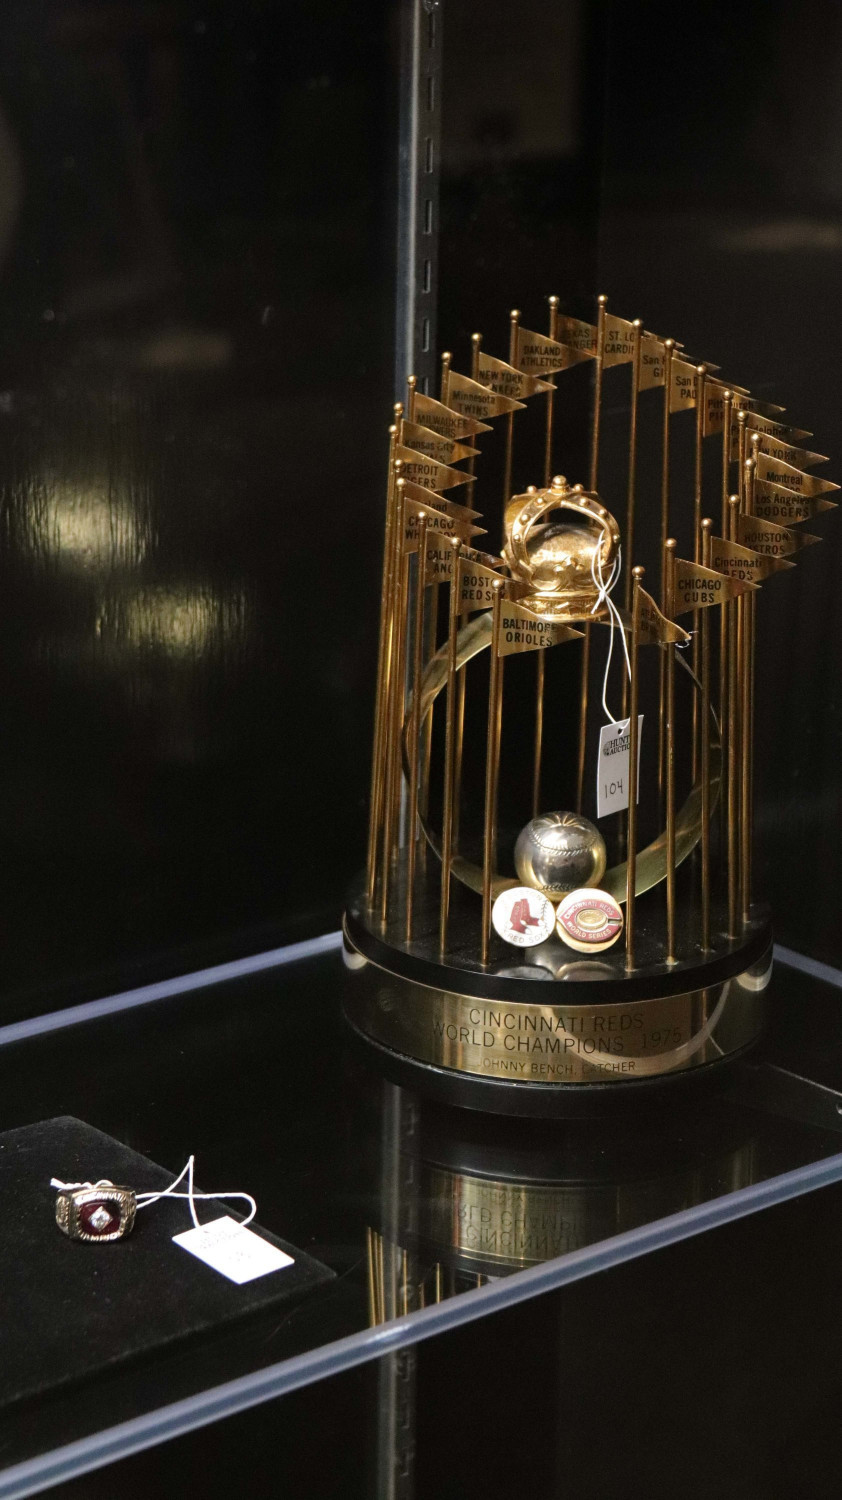 Johnny Bench's mini World Series trophy and ring from the 1975 World Series.